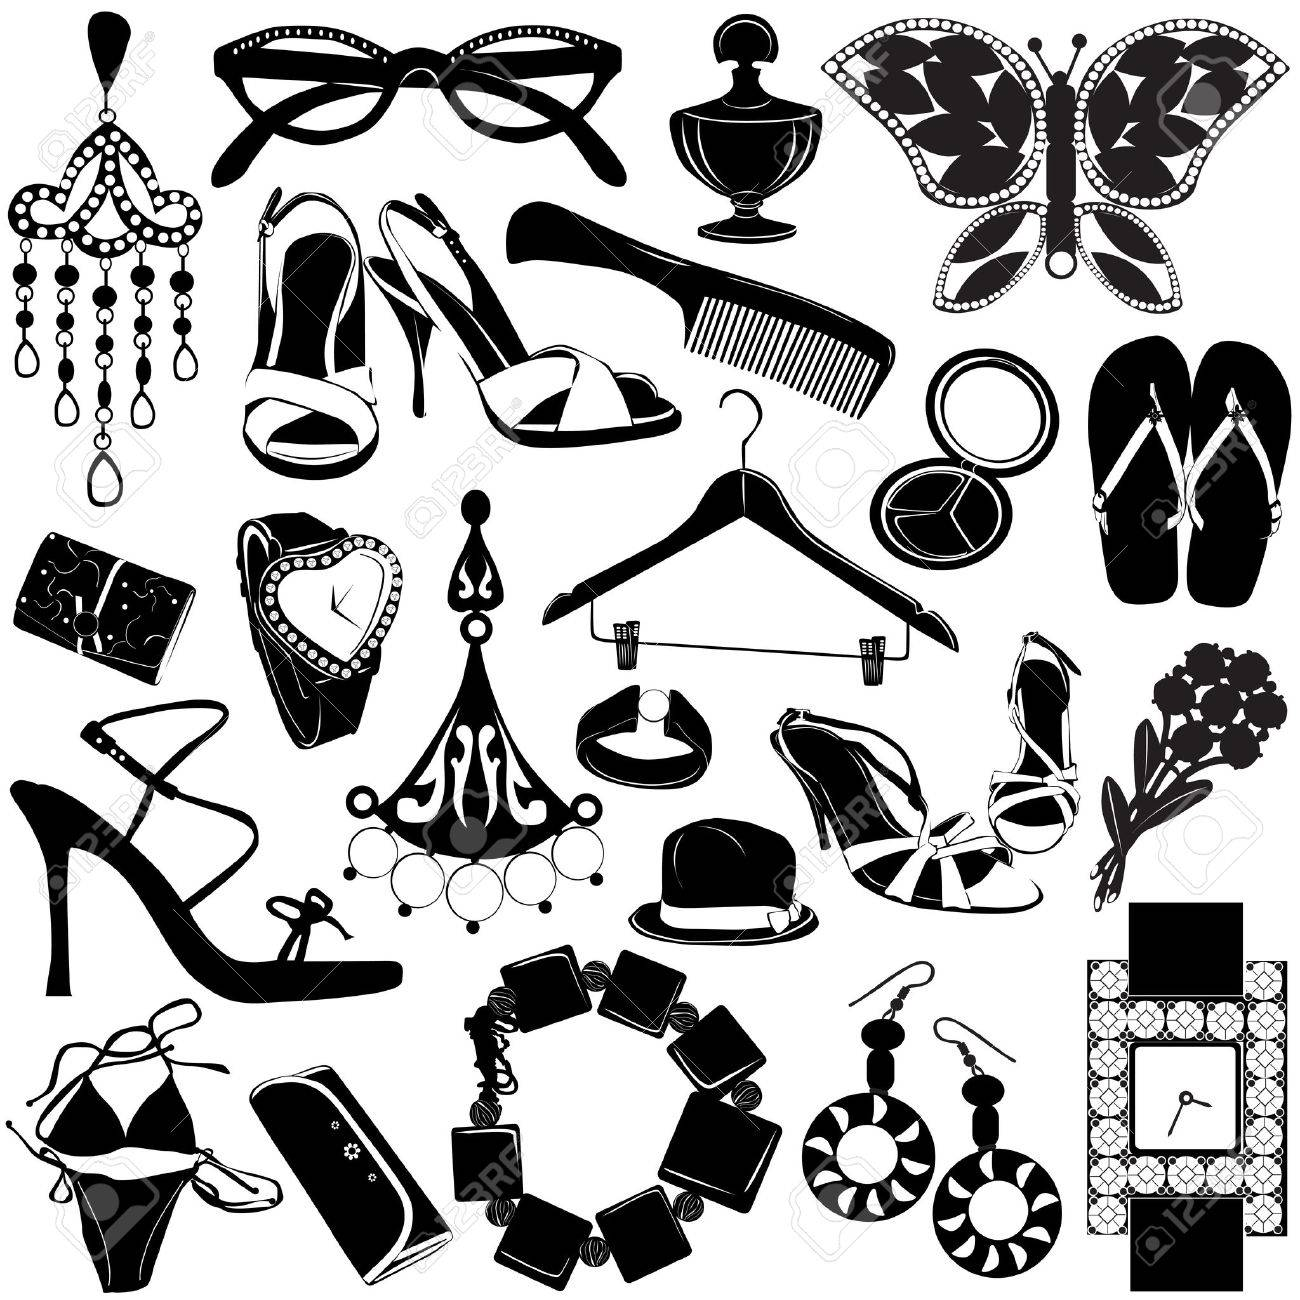 6856ae8118d3 Women Accessories Royalty Free Cliparts, Vectors, And Stock ...